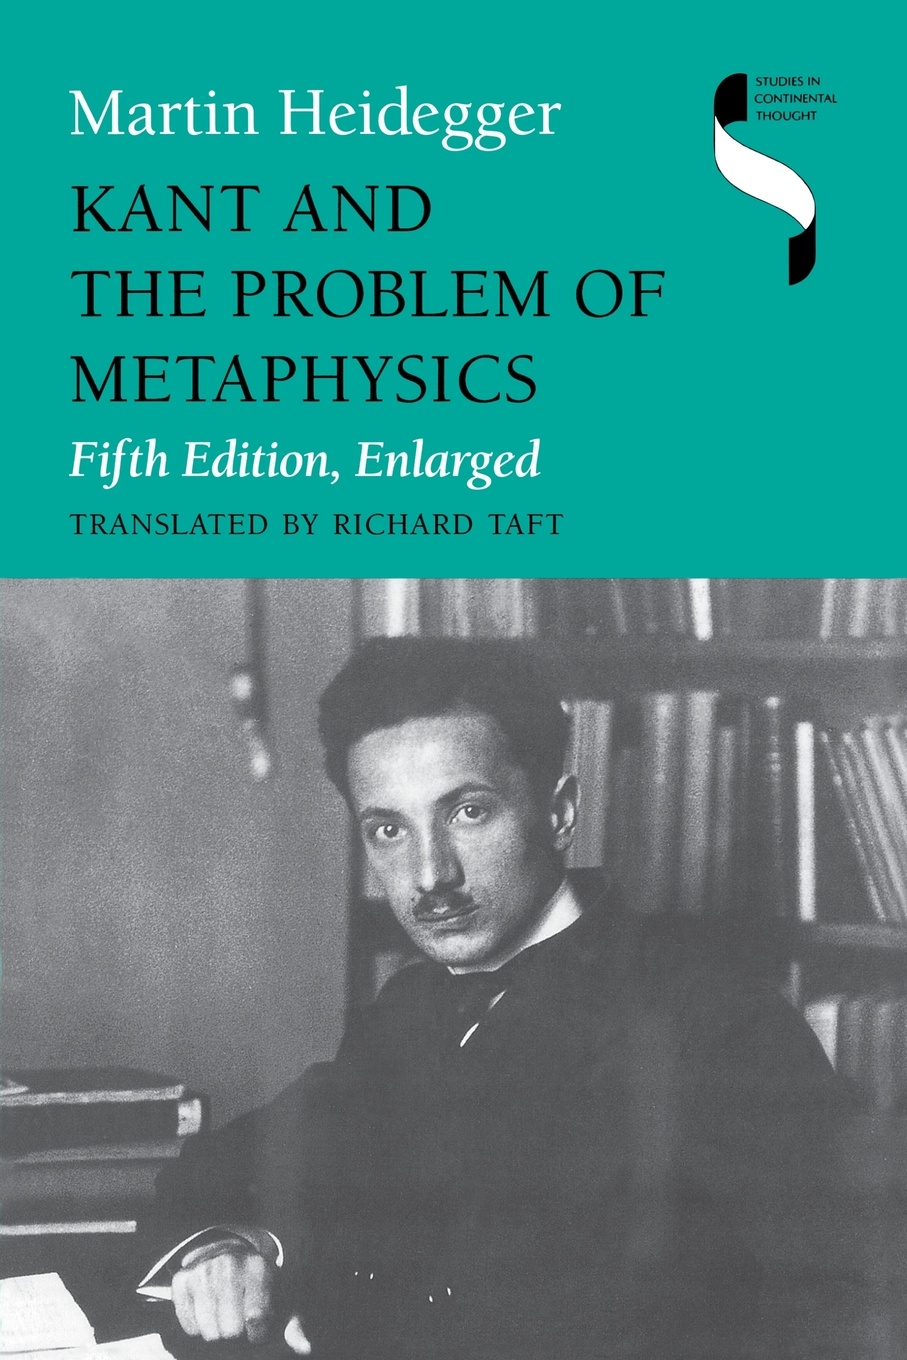 Martin Heidegger, Richard Polt, Richard Taft Kant and the Problem of Metaphysics, Fifth Edition, Enlarged richard l epstein the pocket guide to critical thinking fifth edition